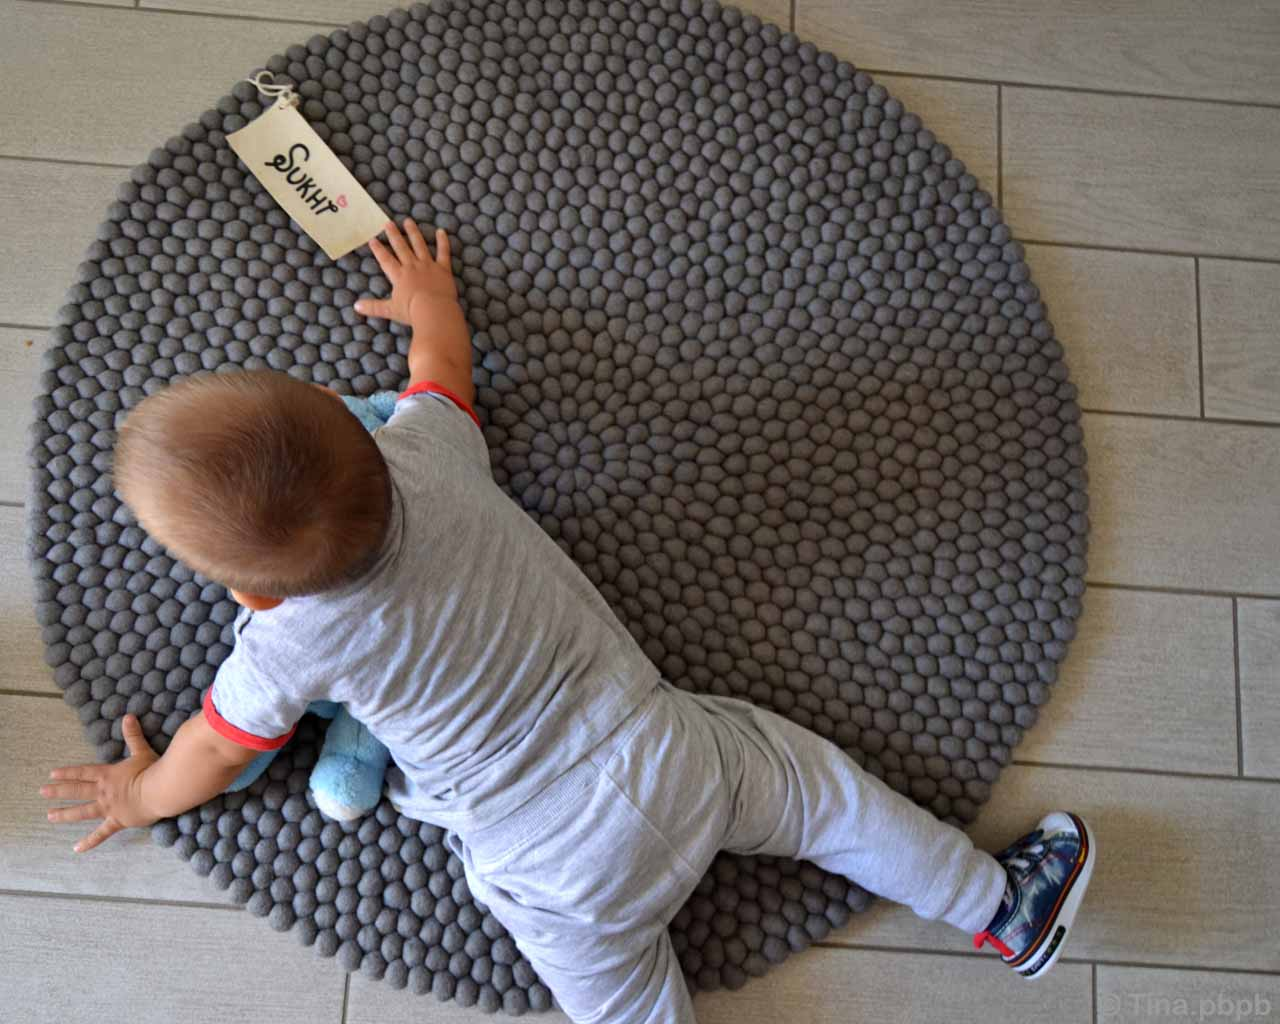 hand knotted baby playing with stuffed toy oriental rugs online